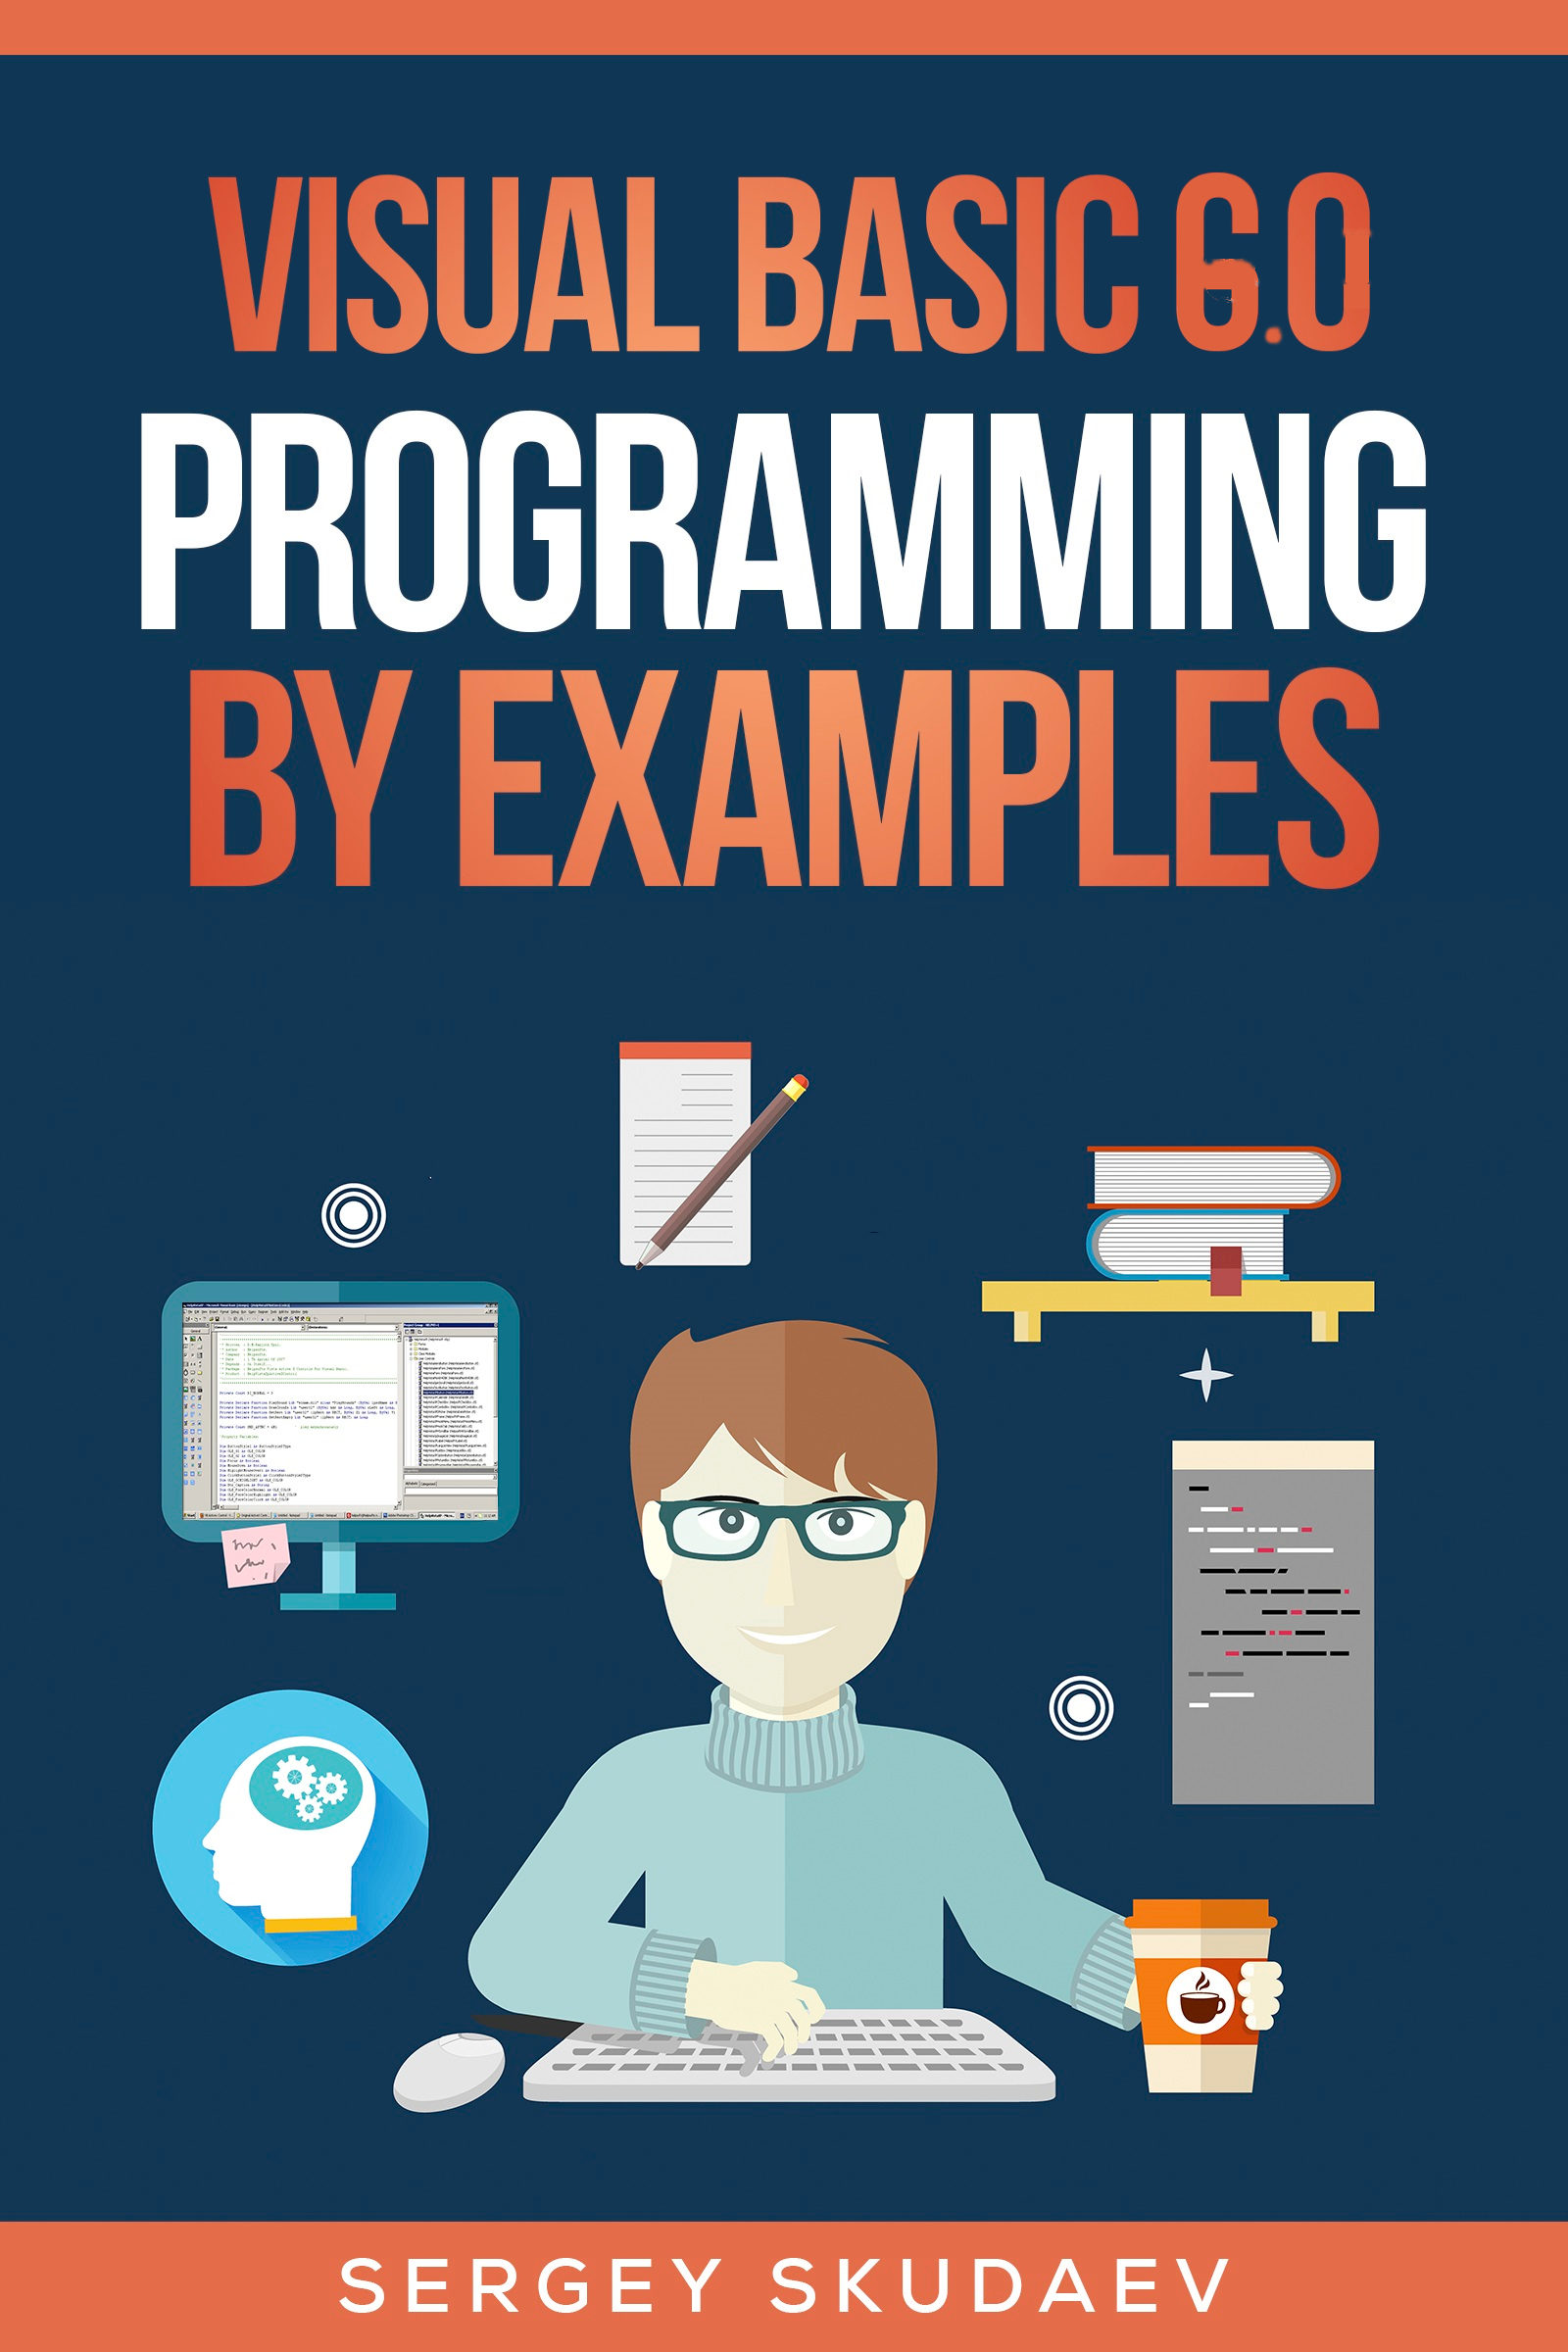 Visual Basic 6 0 Programming By Examples, an Ebook by Sergey Skudaev